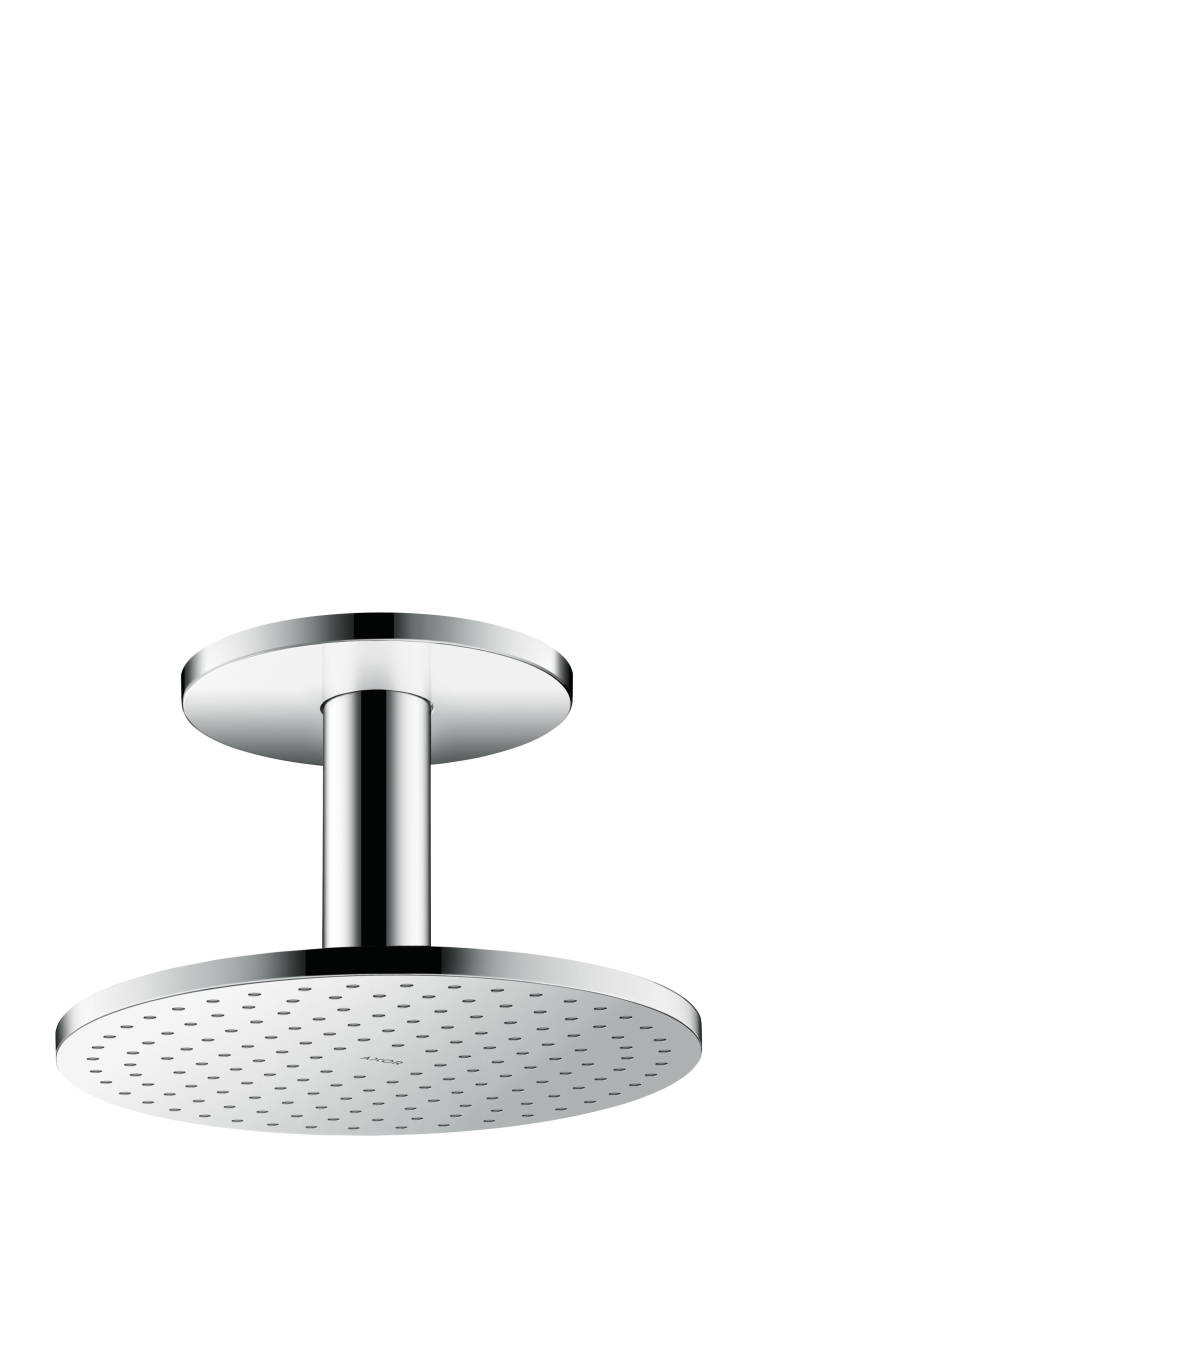 Overhead shower 250 1jet with ceiling connection, Chrome, 35286000